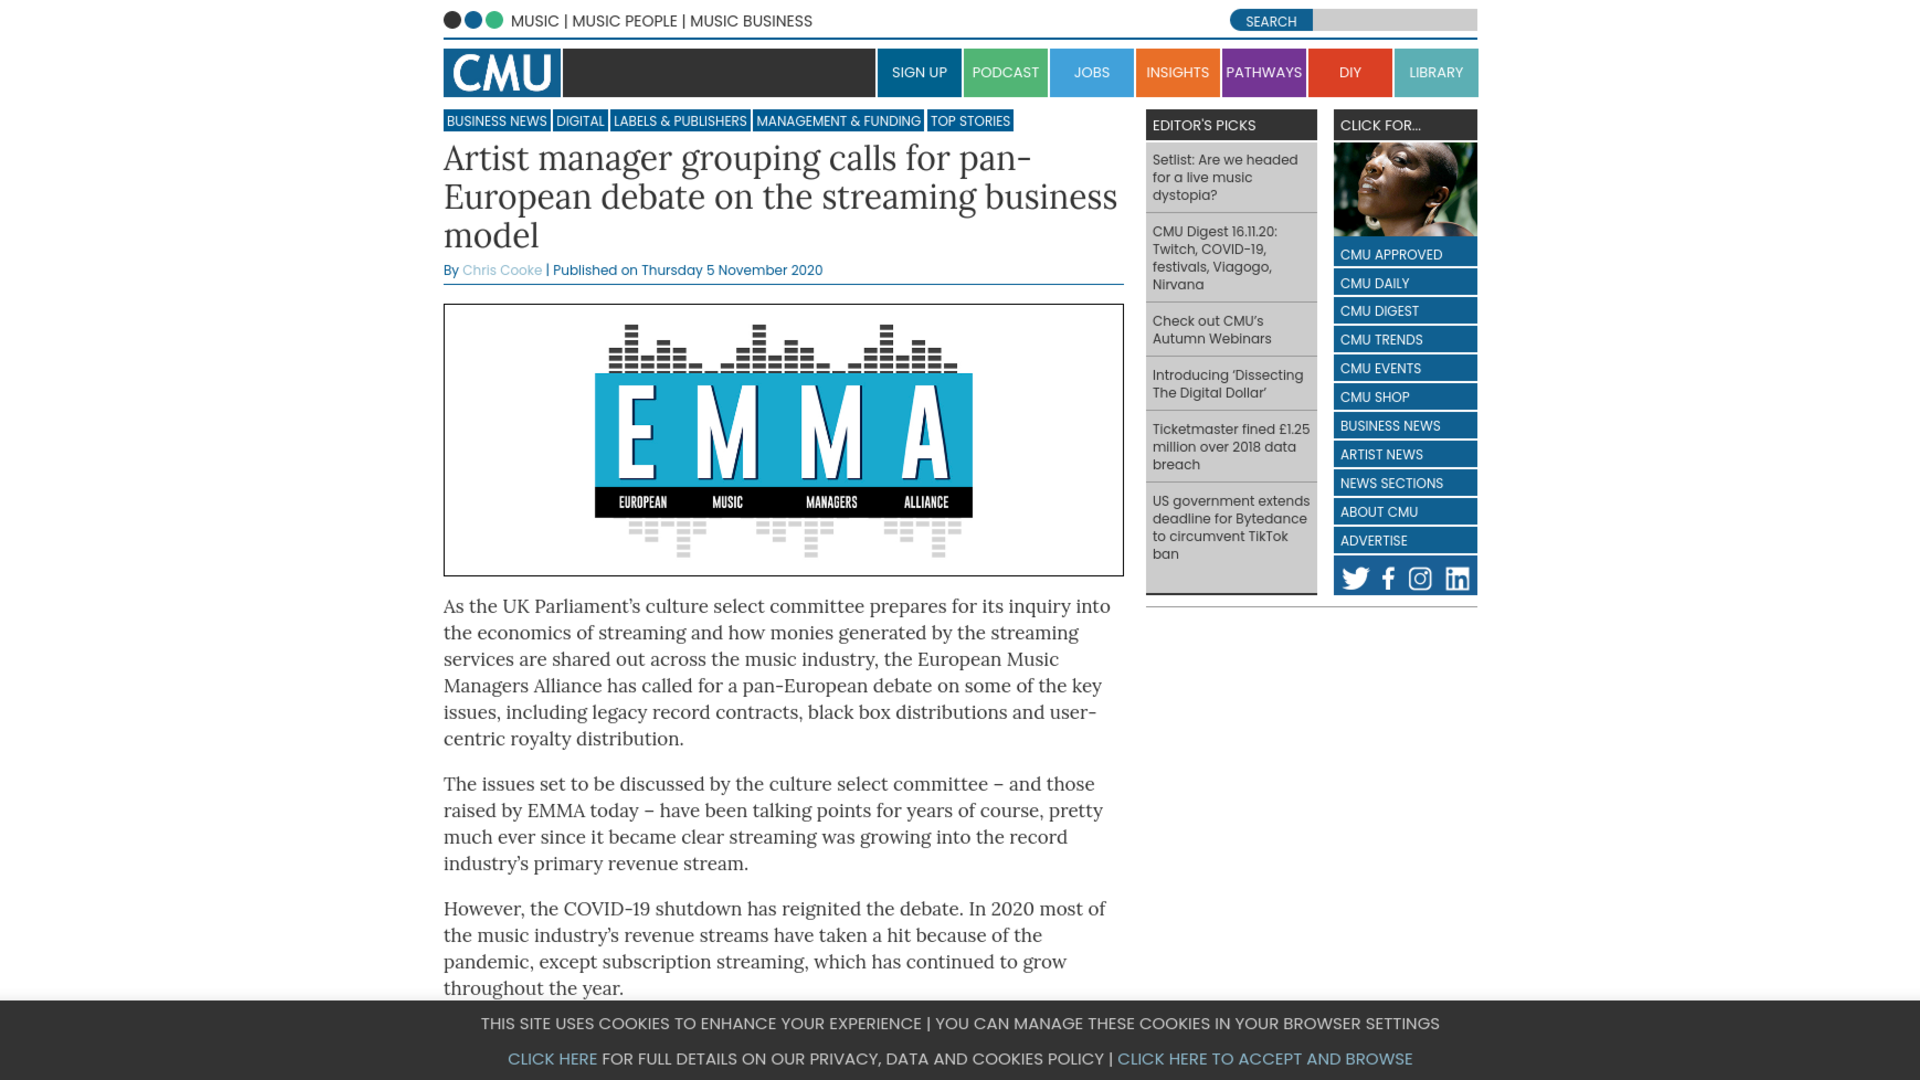 Fairness Rocks News Artist manager grouping calls for pan-European debate on the streaming business model